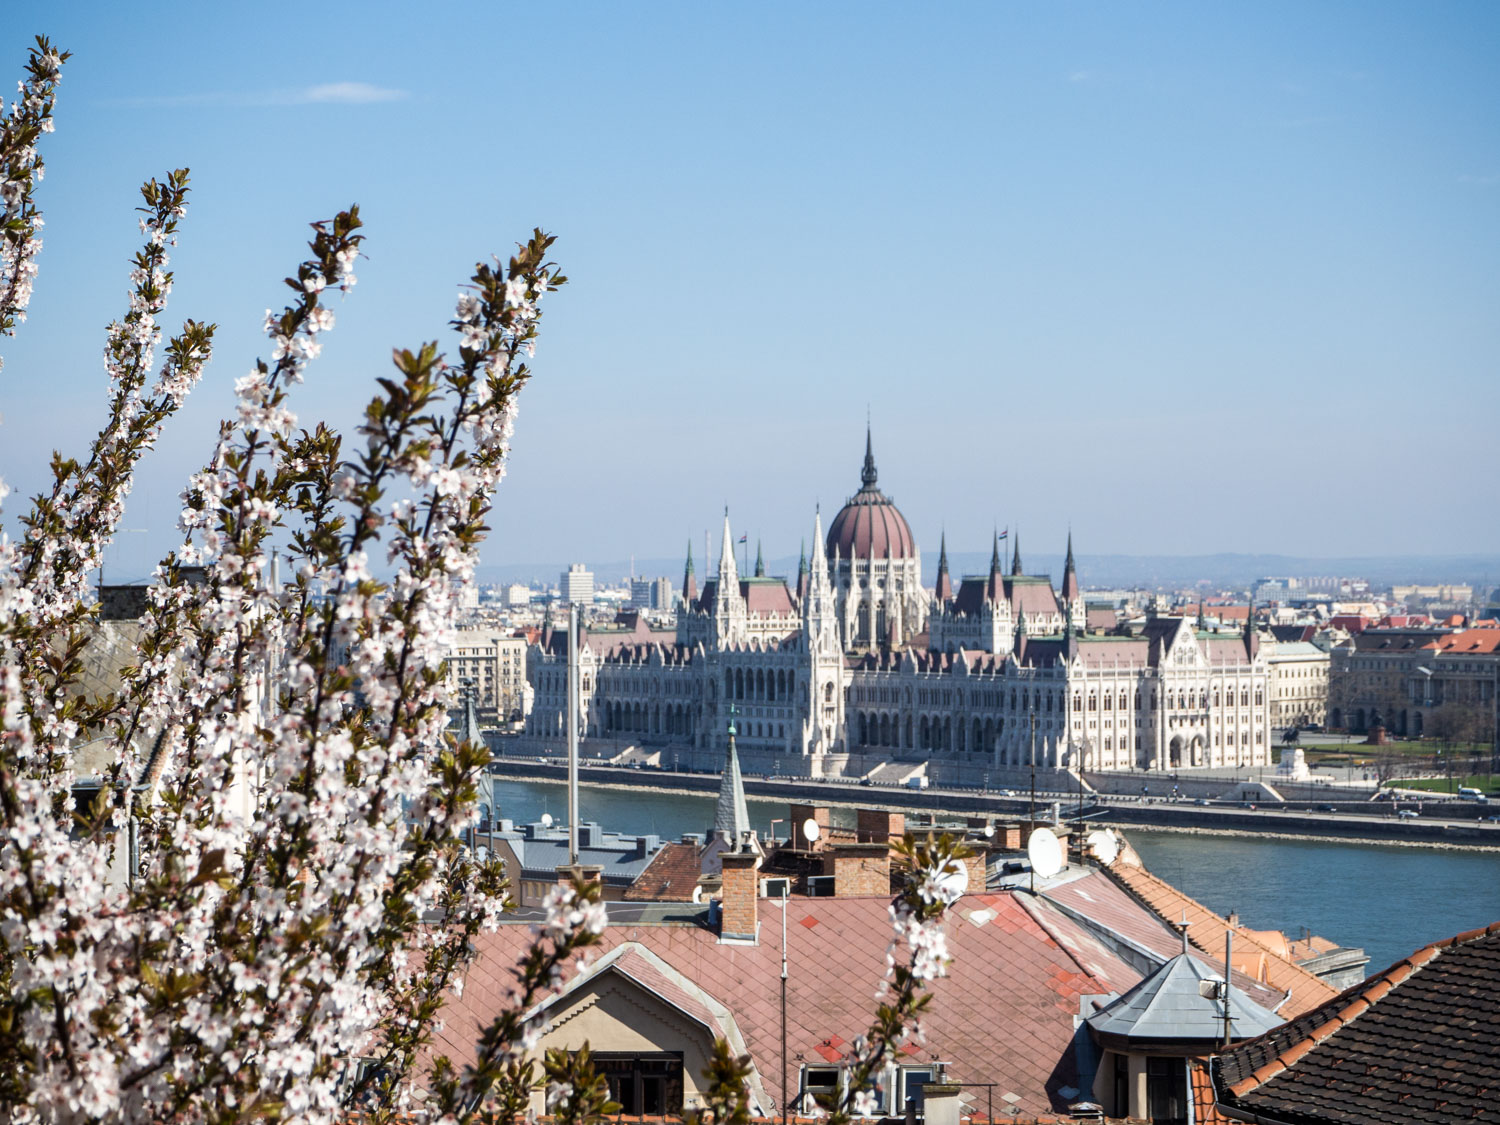 Budapest Parliament seen from the Buda side of the river.